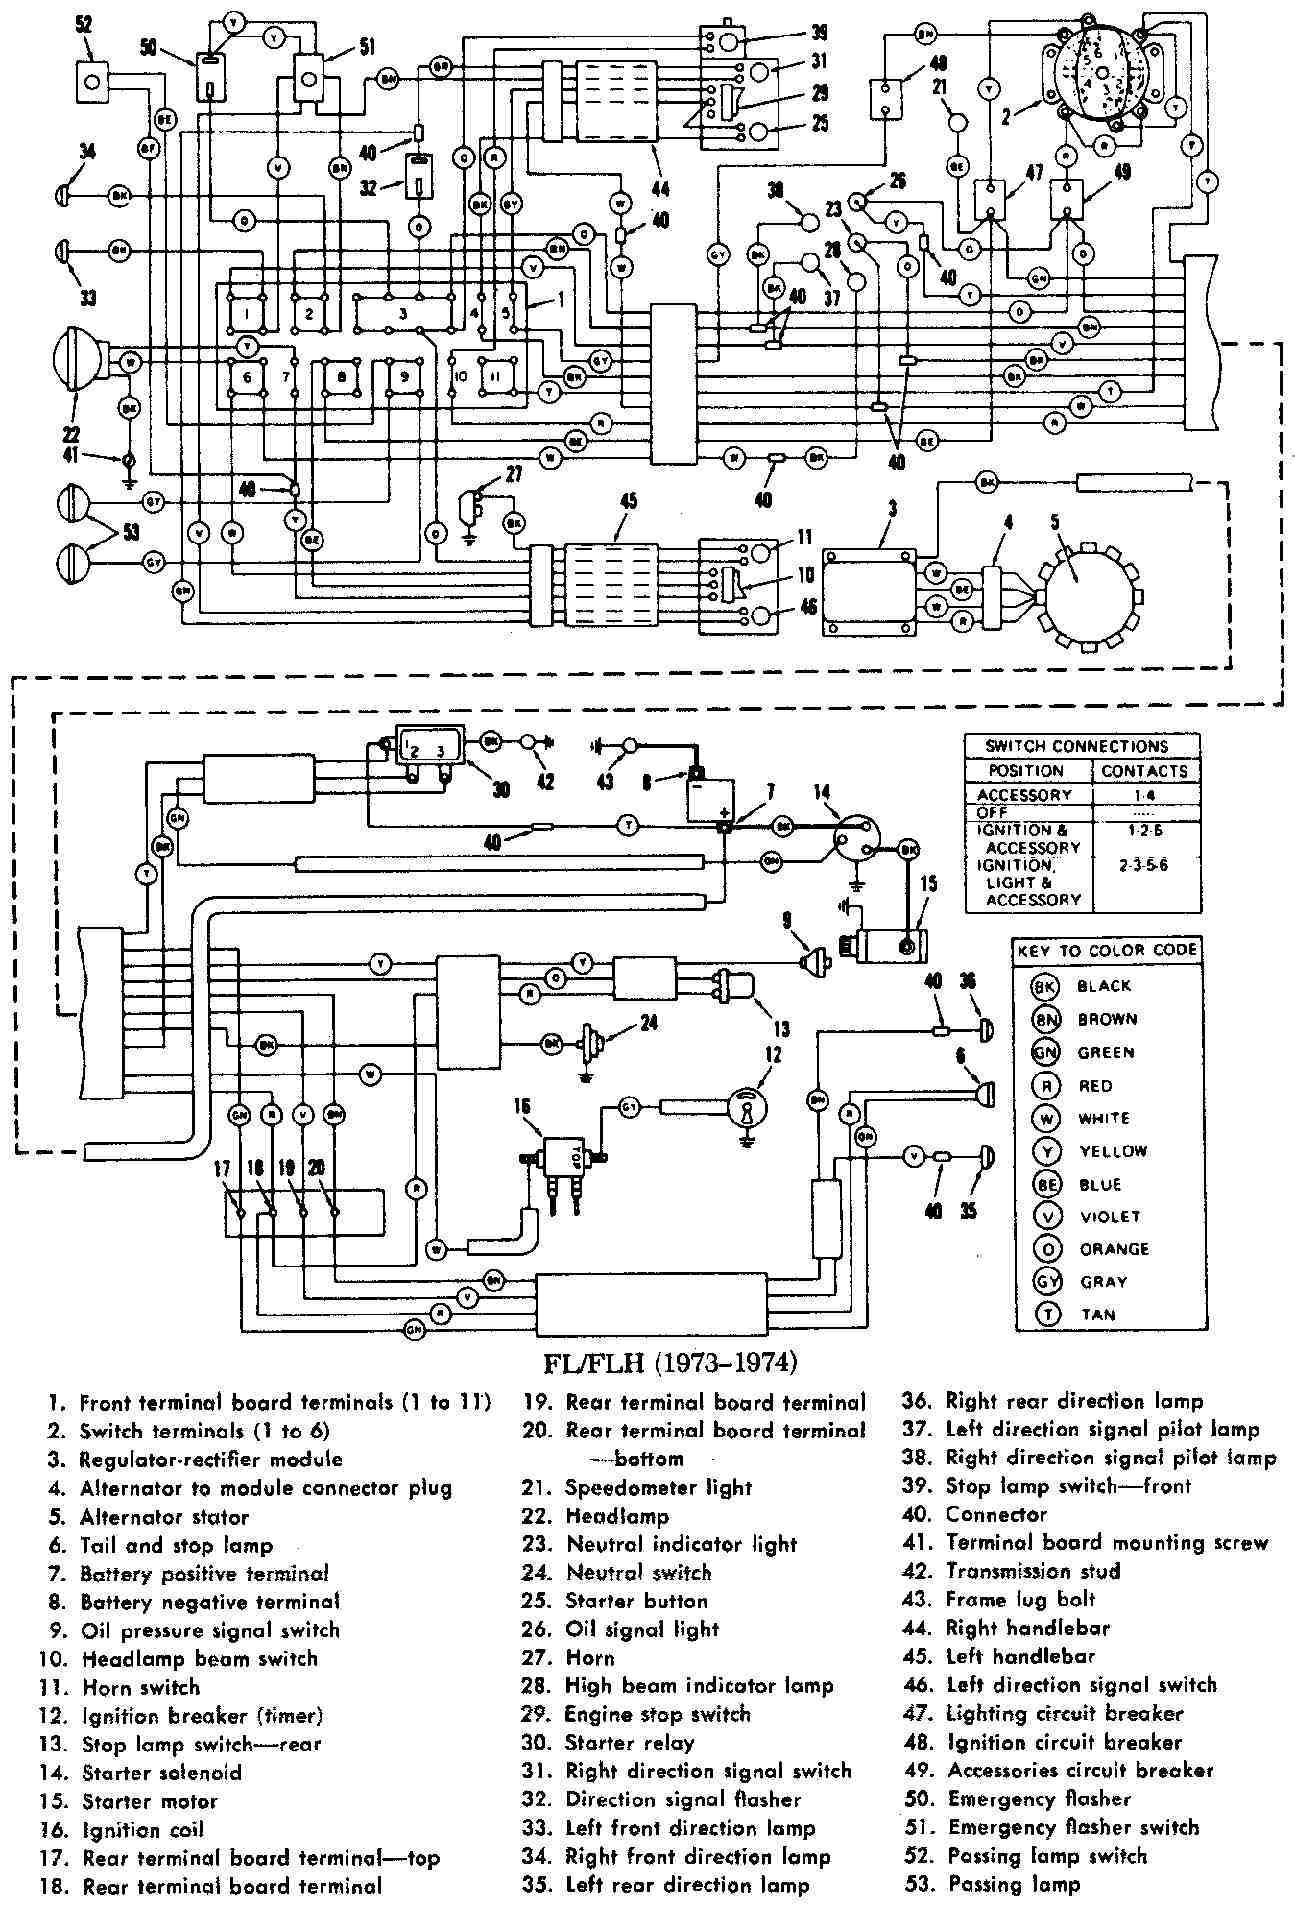 Outstanding Tr6 Wiring Diagram For 73 Today Diagram Data Schema Wiring Cloud Eachirenstrafr09Org